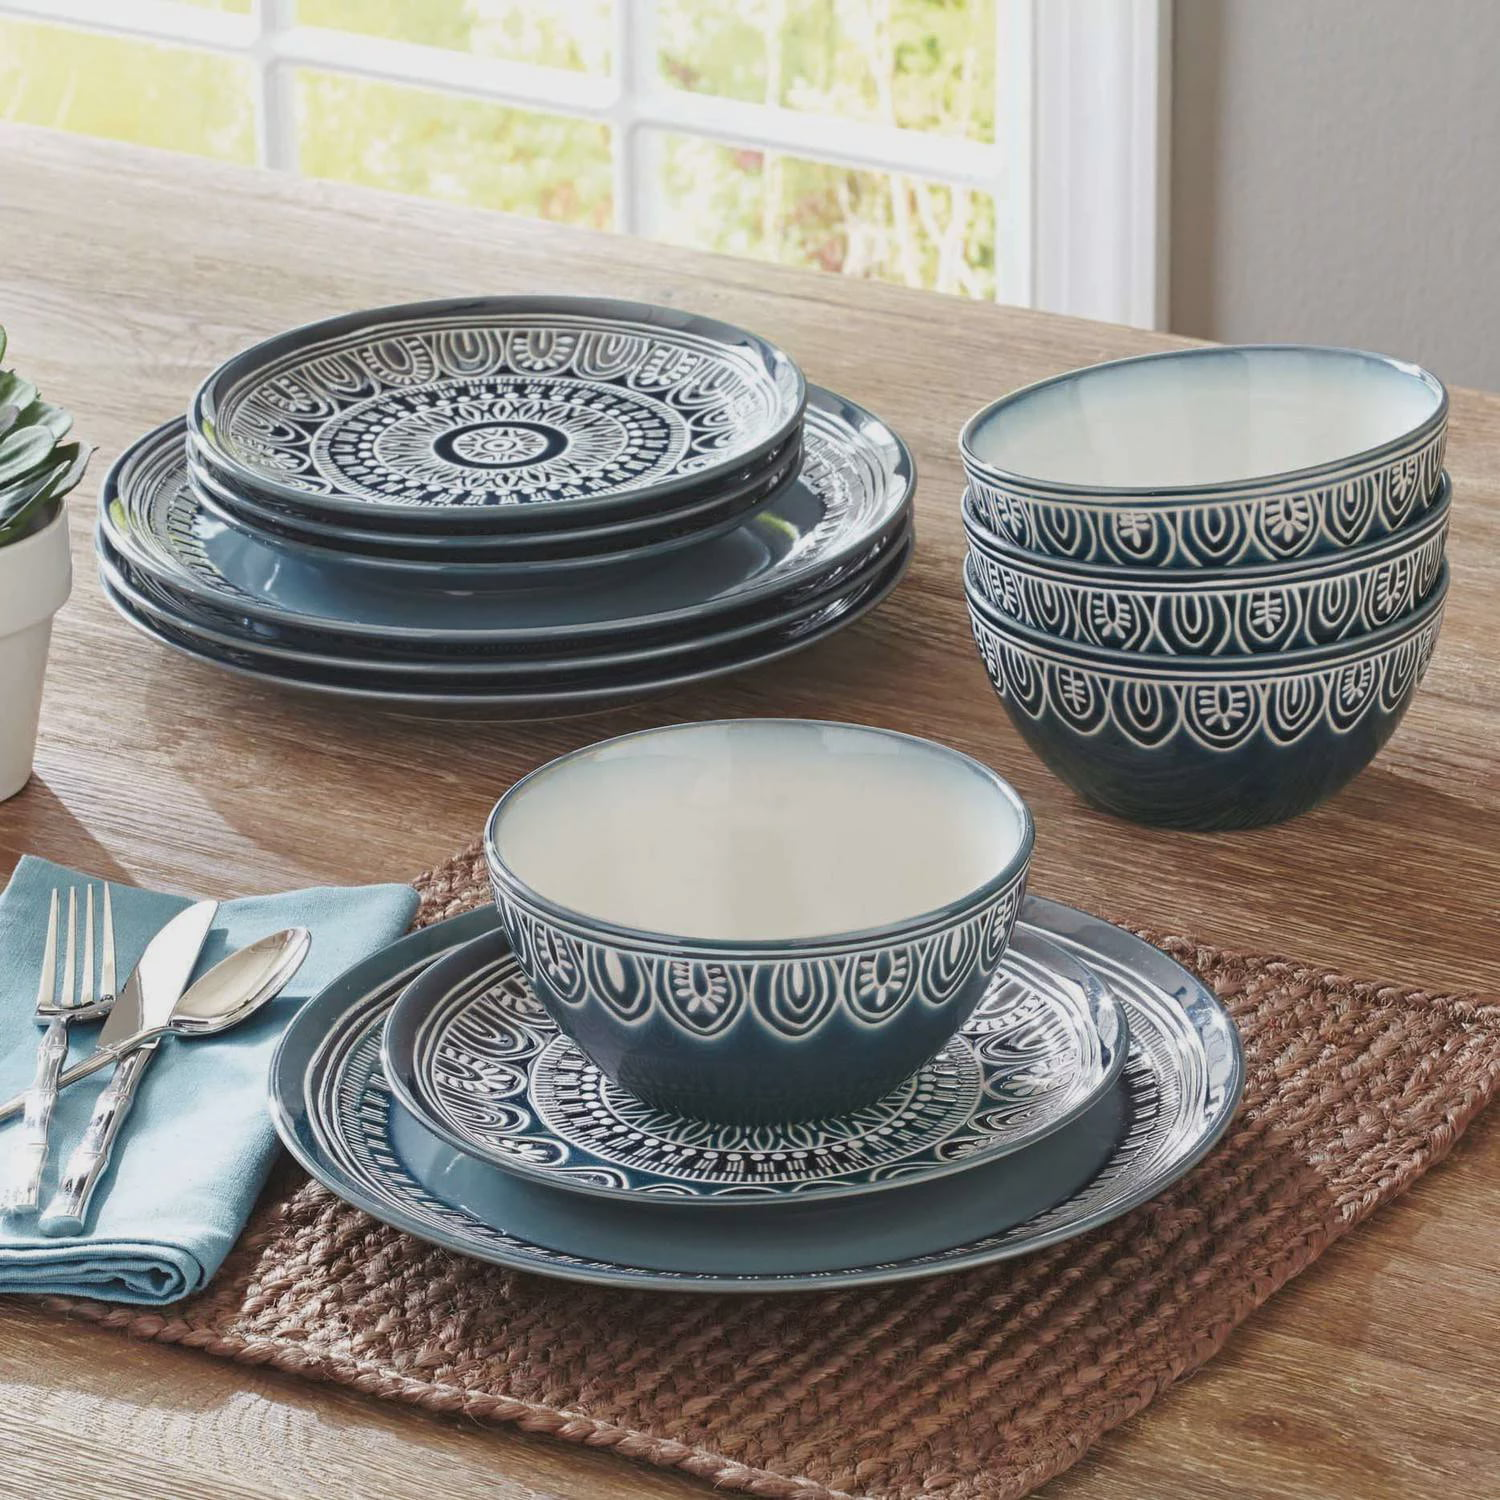 Better Homes and Gardens Teal Medallion 12-Piece Dinnerware Set Teal - Walmart.com & Better Homes and Gardens Teal Medallion 12-Piece Dinnerware Set ...